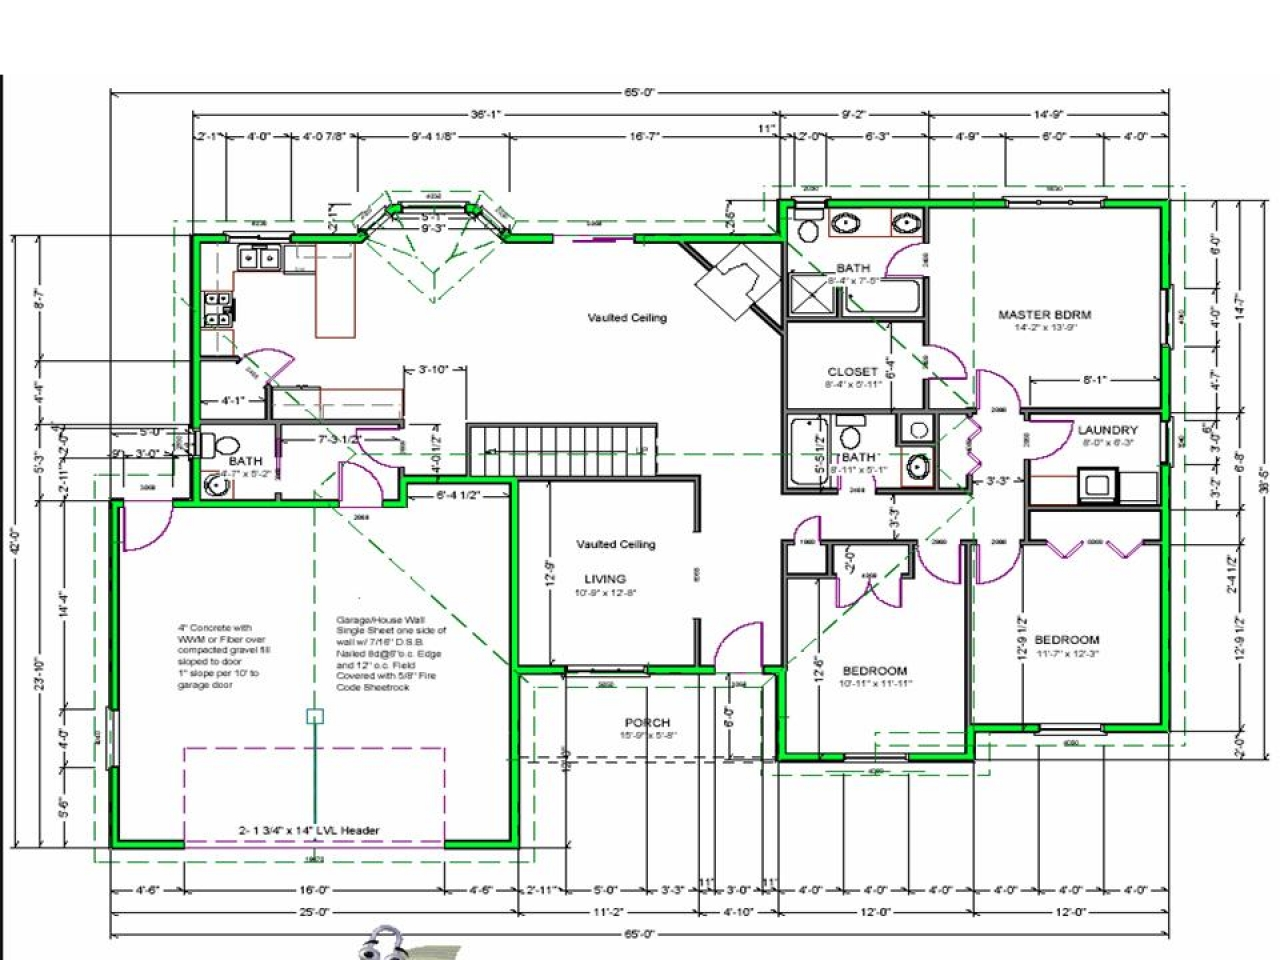 Floor Plan Drawing At Getdrawings Com Free For Personal